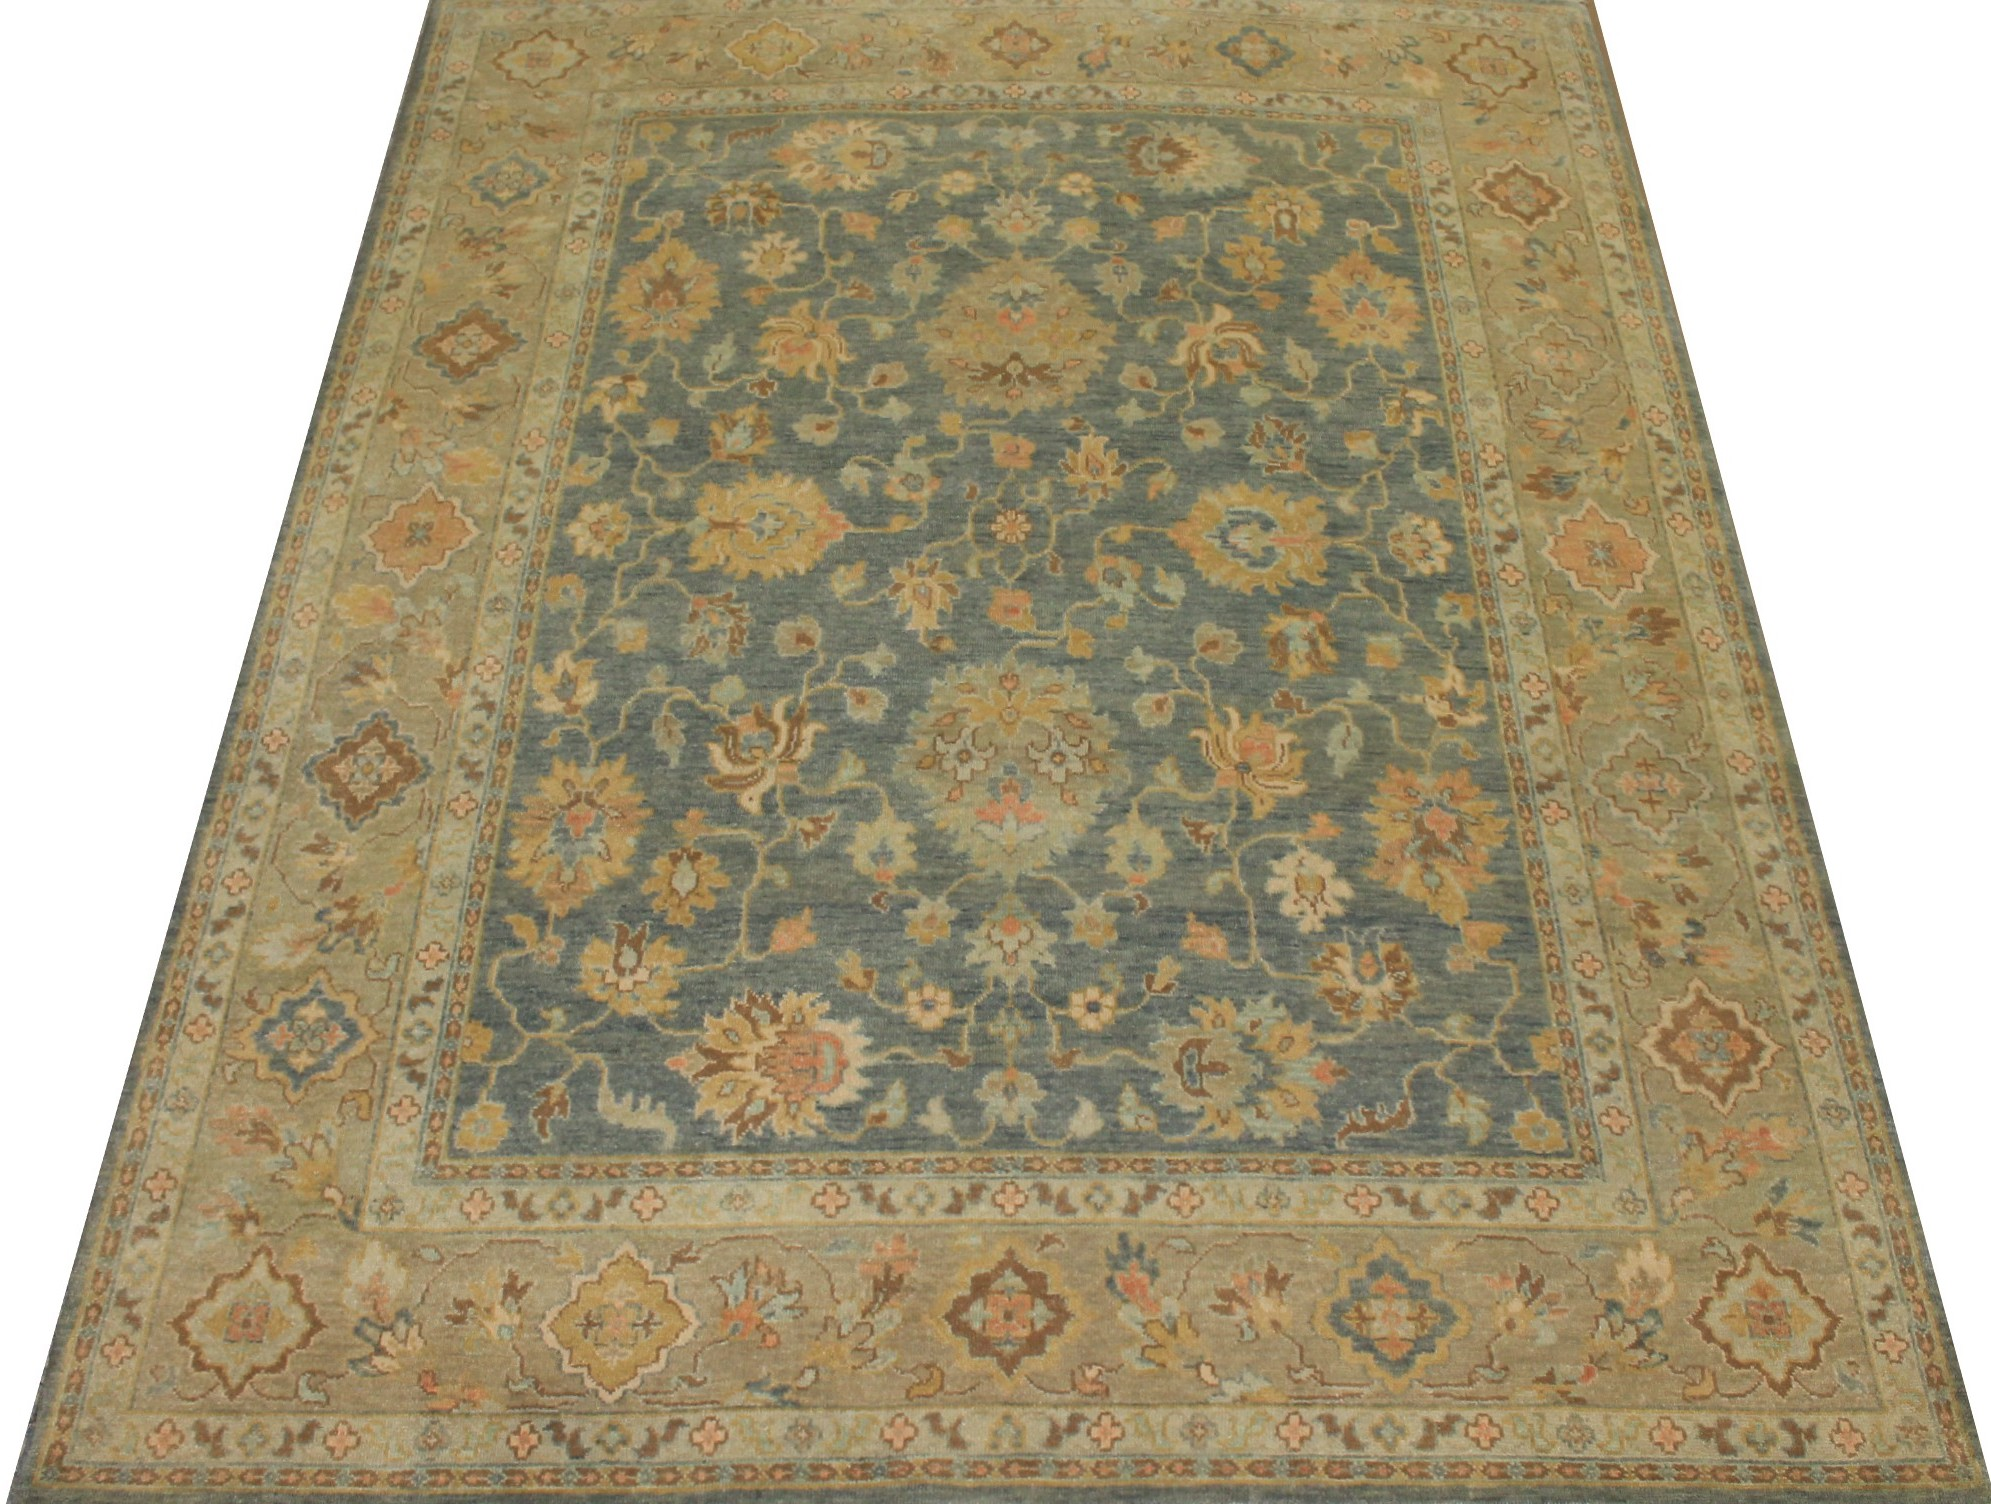 8x10 Traditional Hand Knotted Wool Area Rug - MR18402